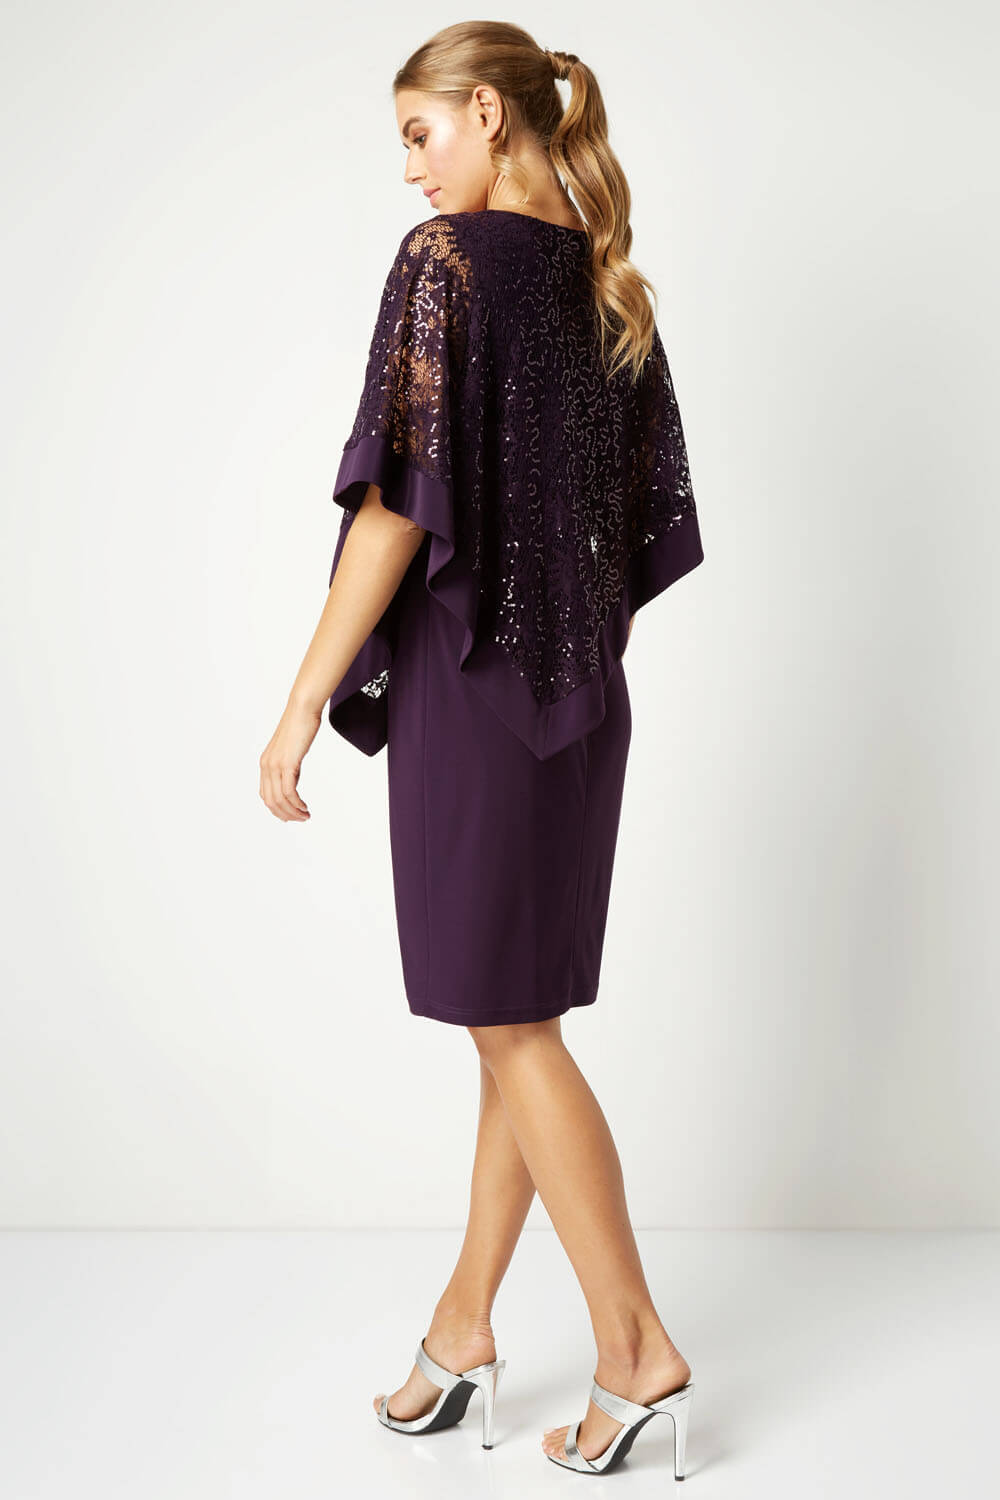 Roman-Originals-Women-039-s-Sequin-Lace-Boat-Neck-Overlay-Knee-Length-Dress thumbnail 21